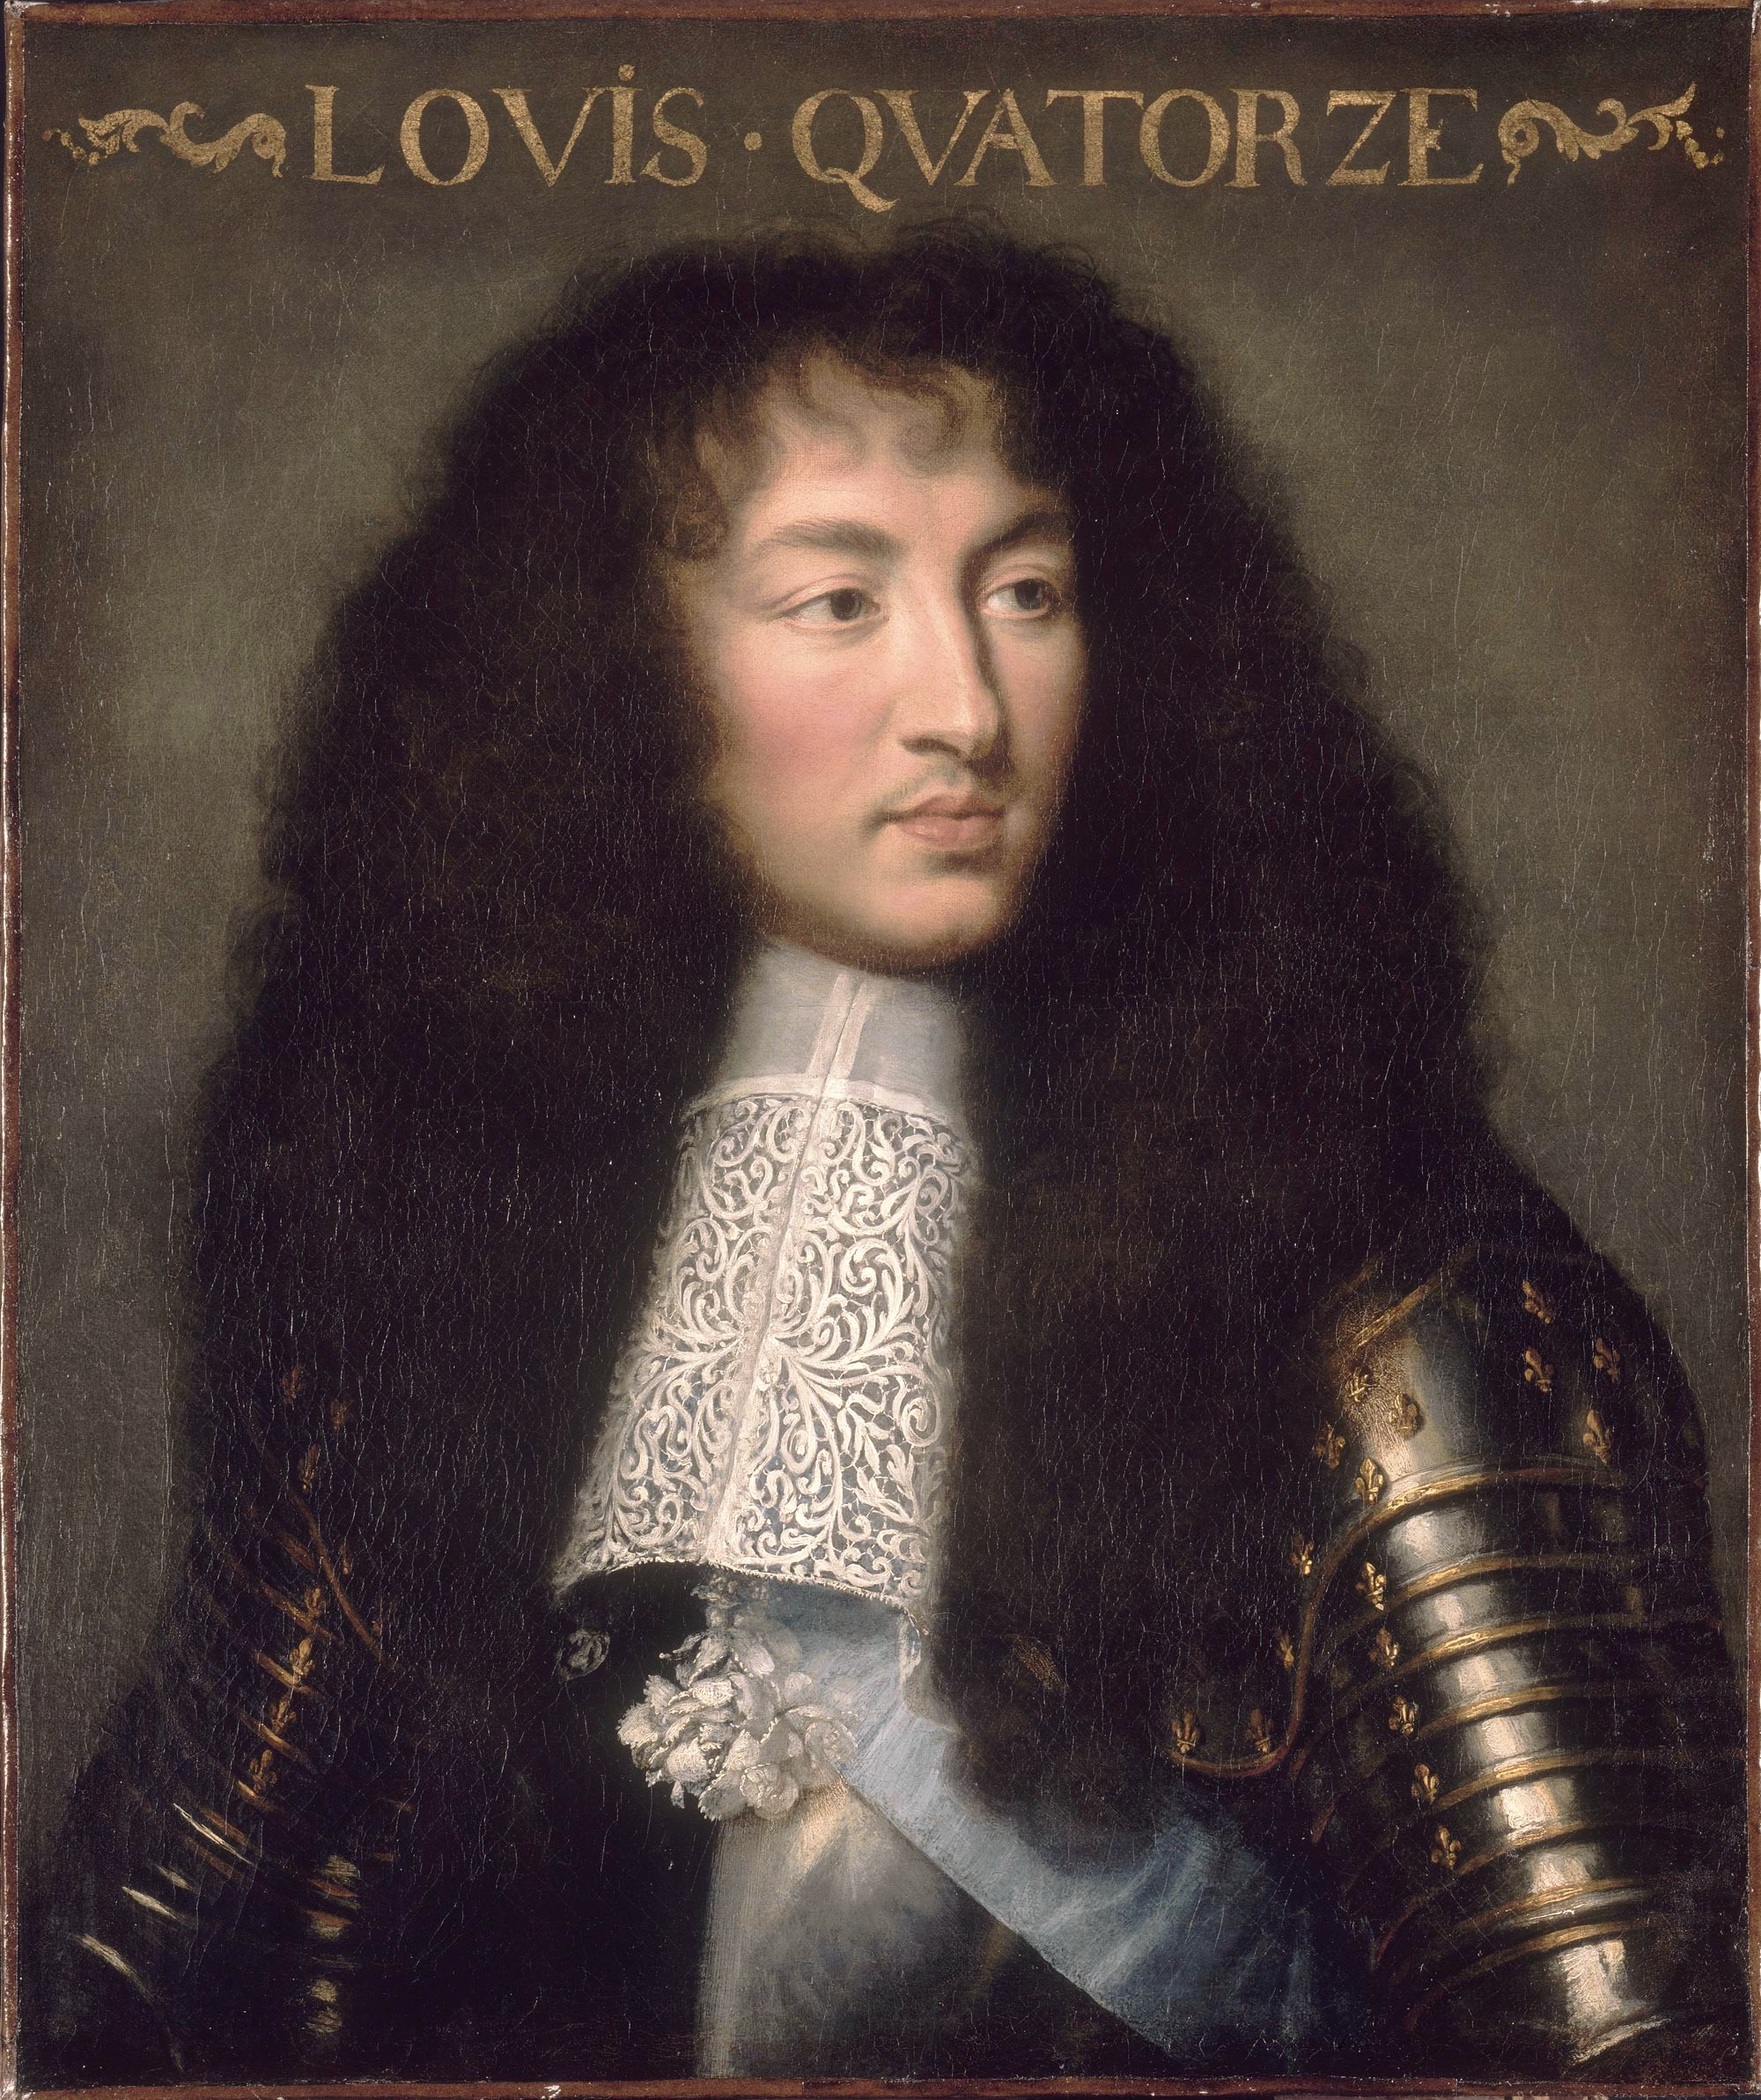 http://upload.wikimedia.org/wikipedia/commons/4/40/Louis-xiv-lebrunl.jpg